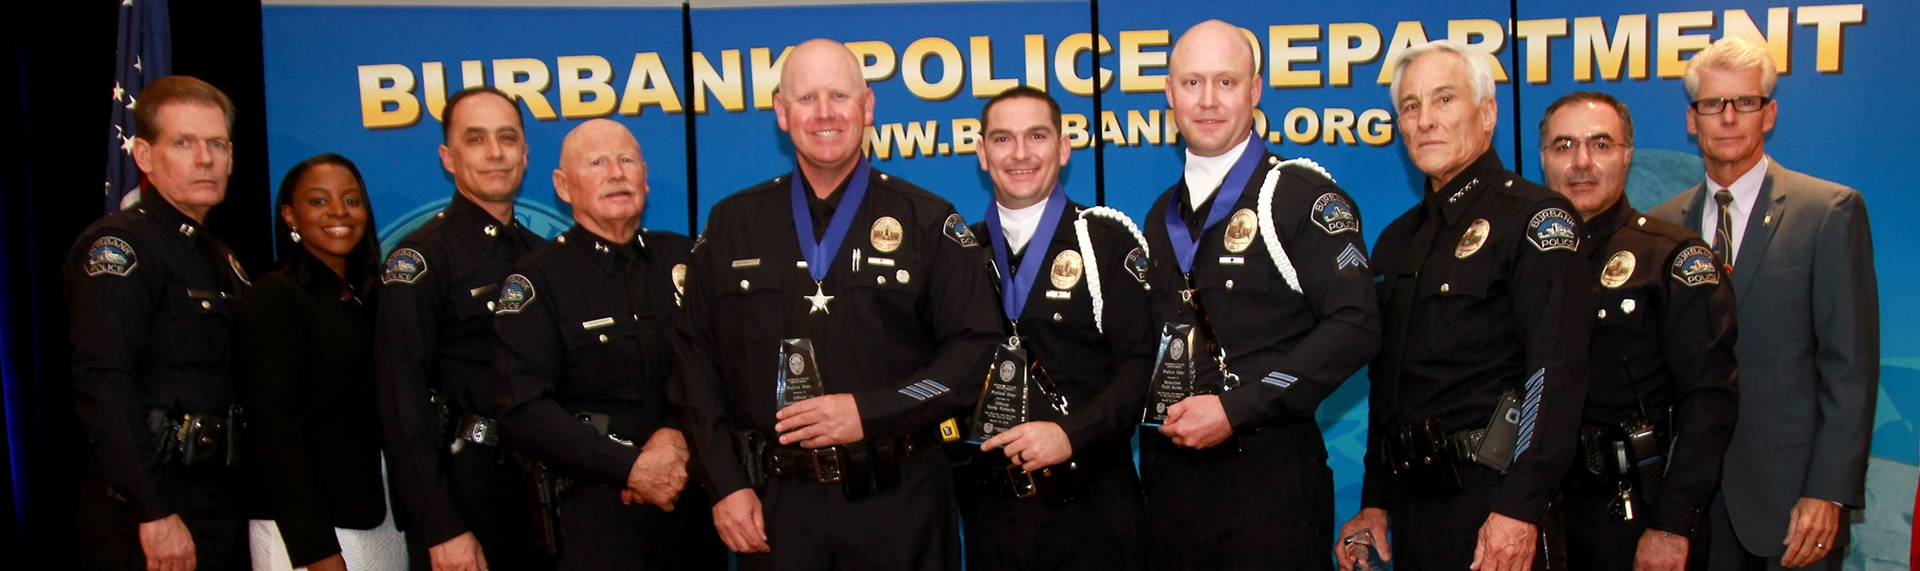 Burbank Police Foundation Recognizes Silver Star Recipients